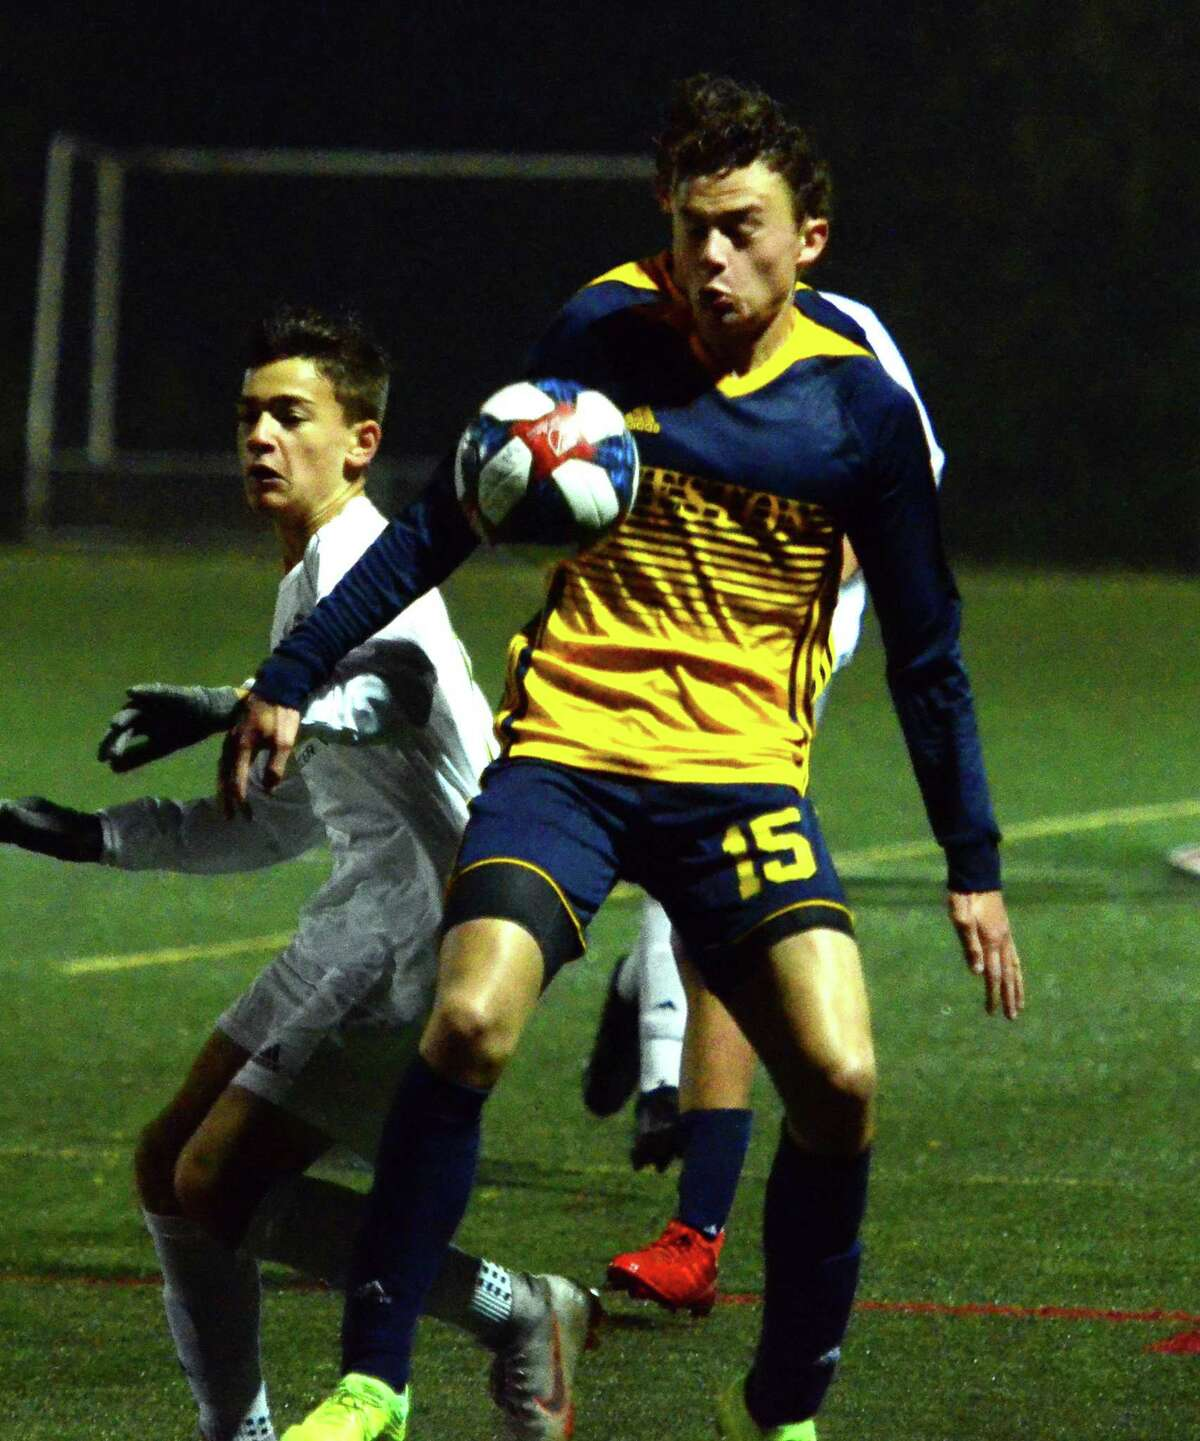 Weston's Daniel Bello deflects the ball during boys soccer action against Joel Barlow in Weston, Conn., on Thursday Oct. 3, 2019.